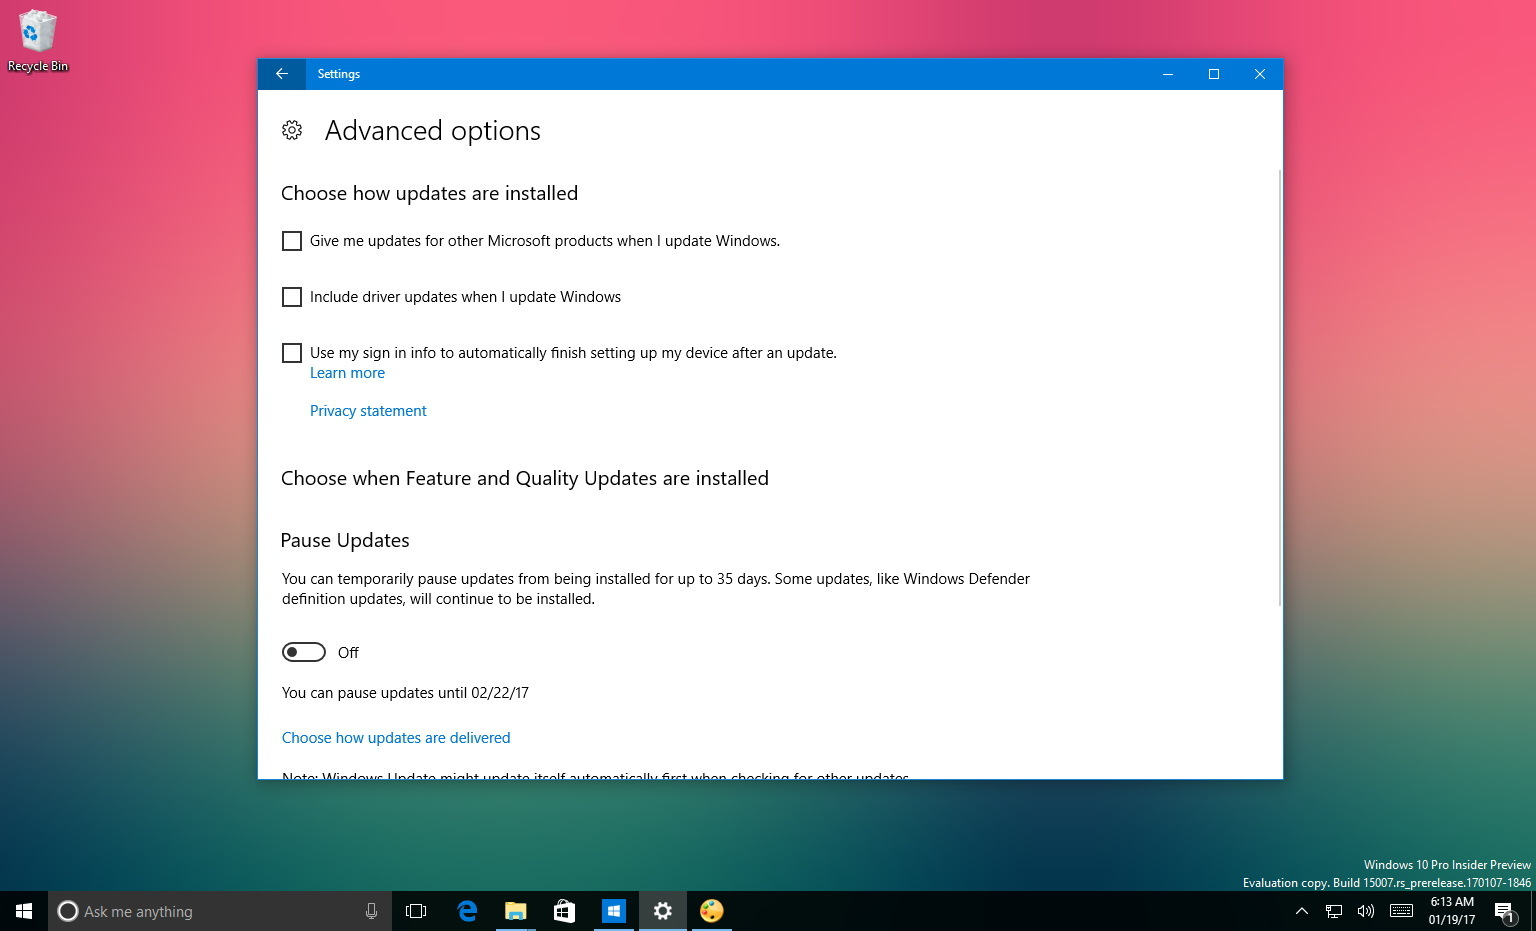 Windows update troubleshooter - Windows 10 Driver Update Option